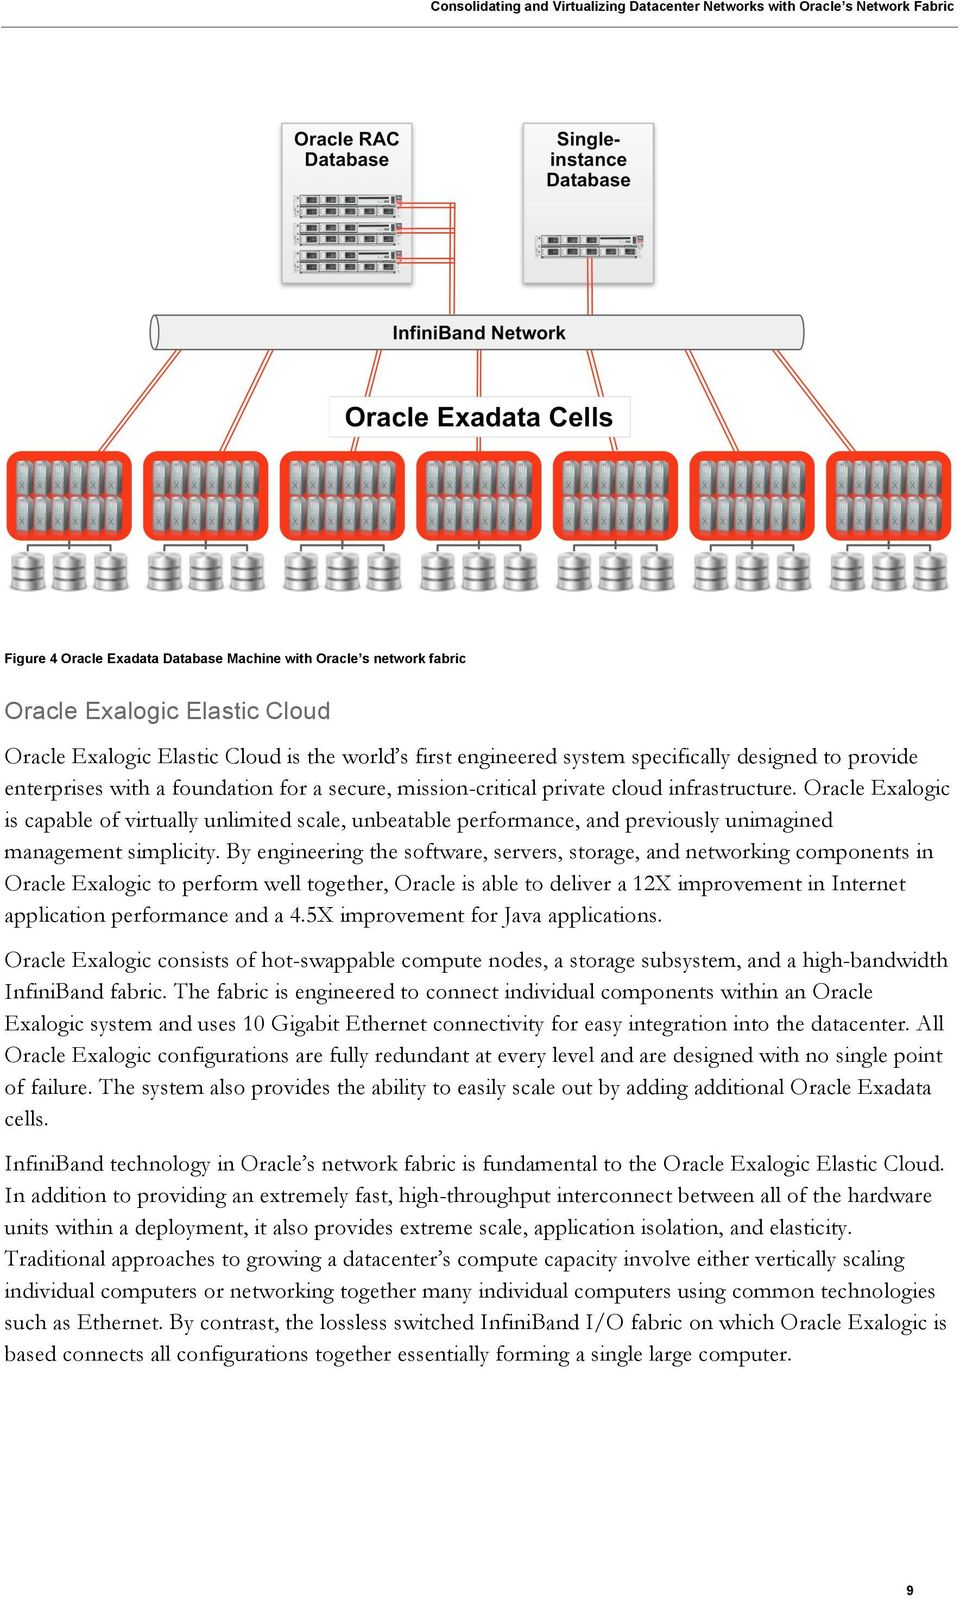 Oracle Exalogic is capable of virtually unlimited scale, unbeatable performance, and previously unimagined management simplicity.